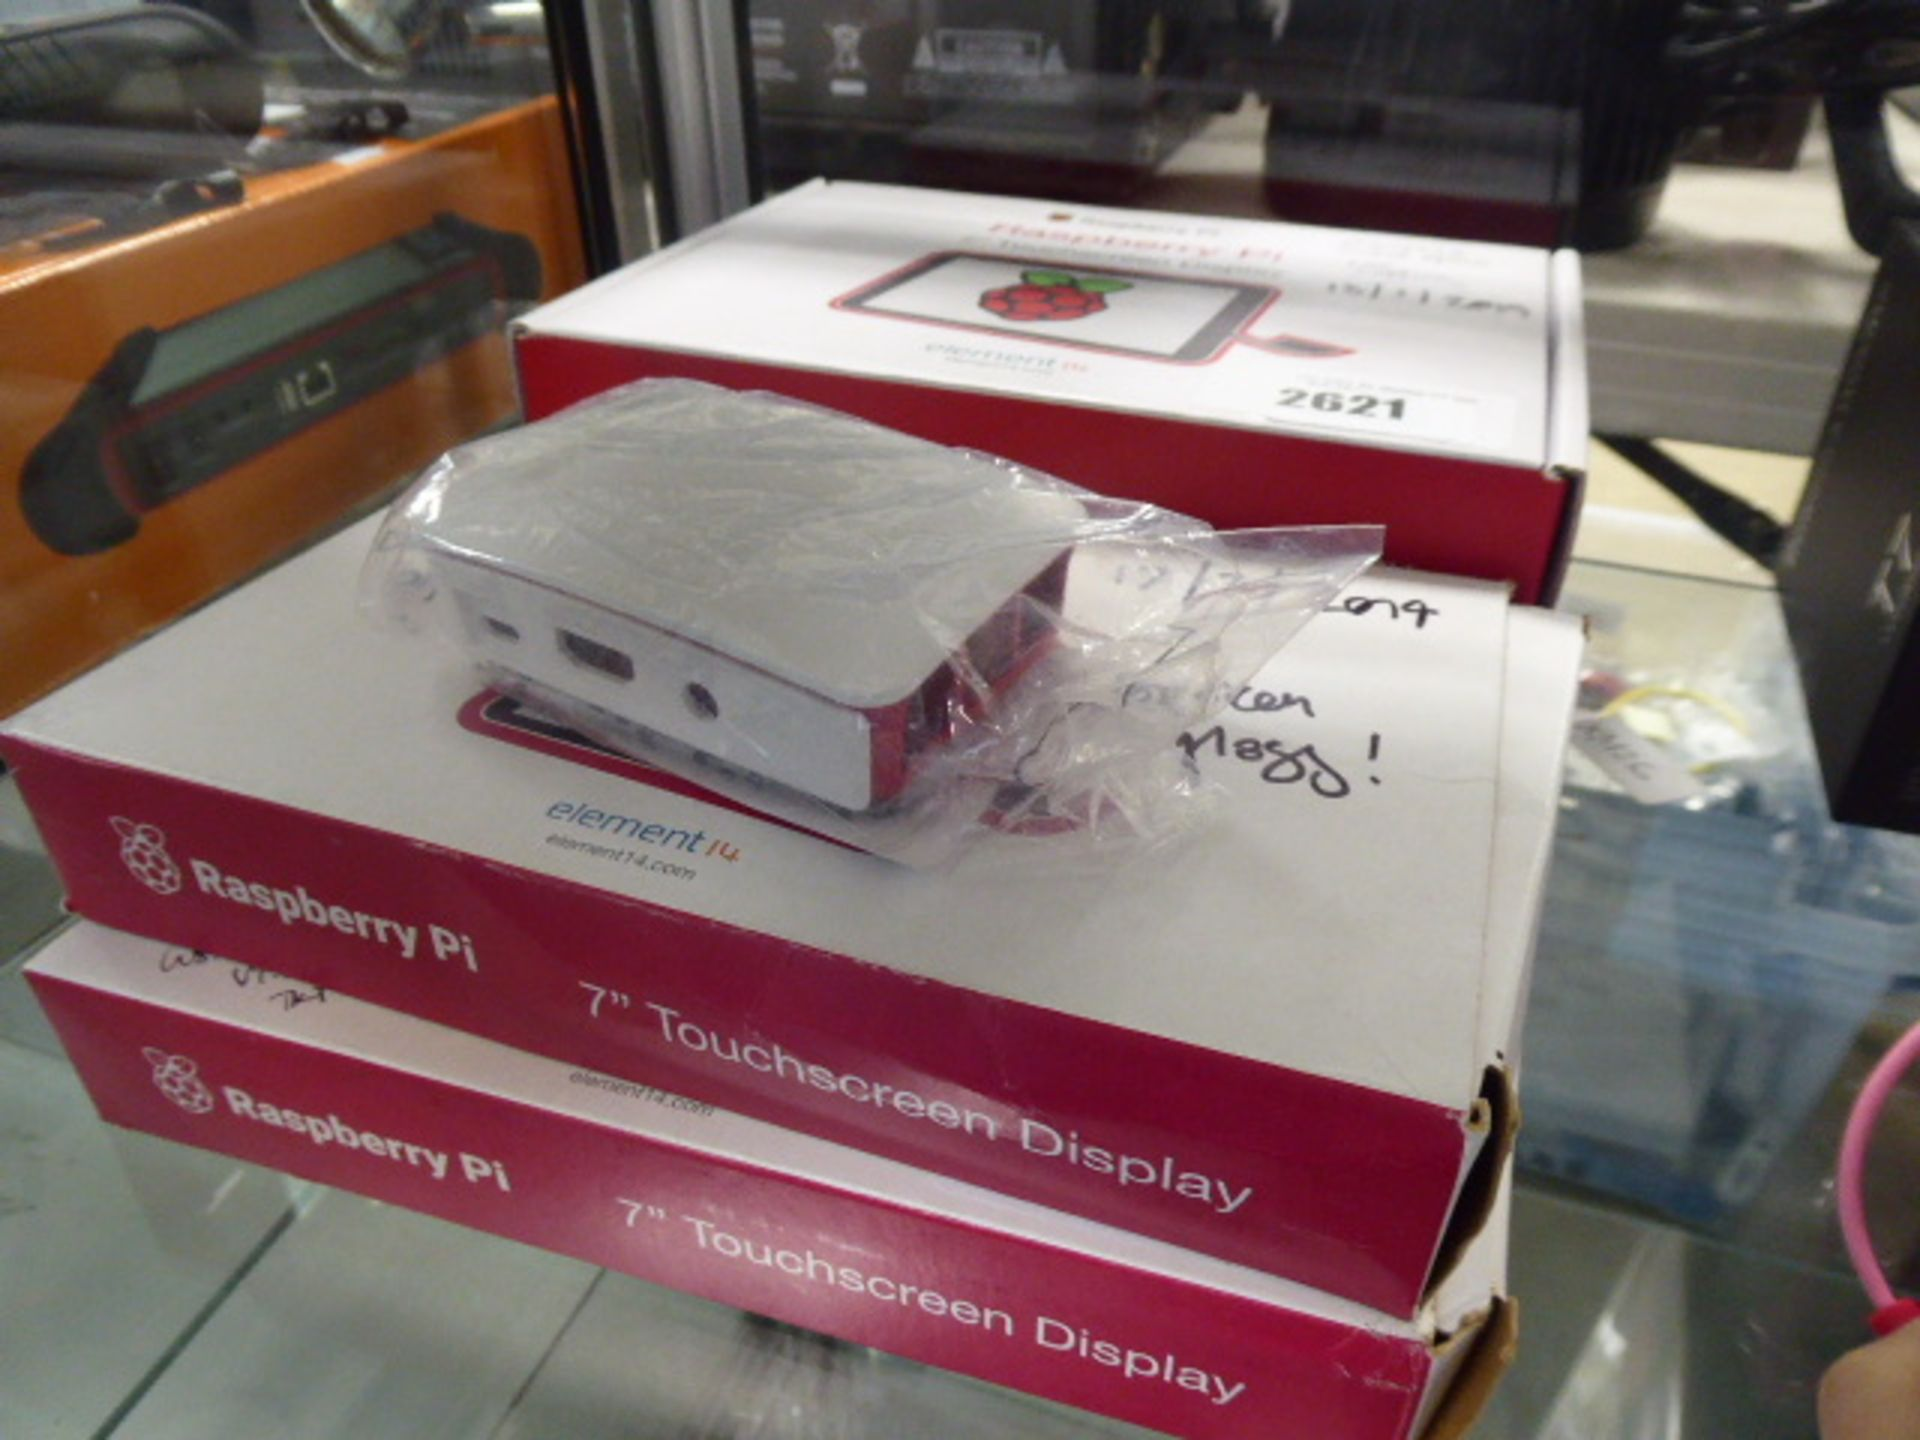 2183 Rasberry Pie 7'' touch screen displays, sold for spares and repairs